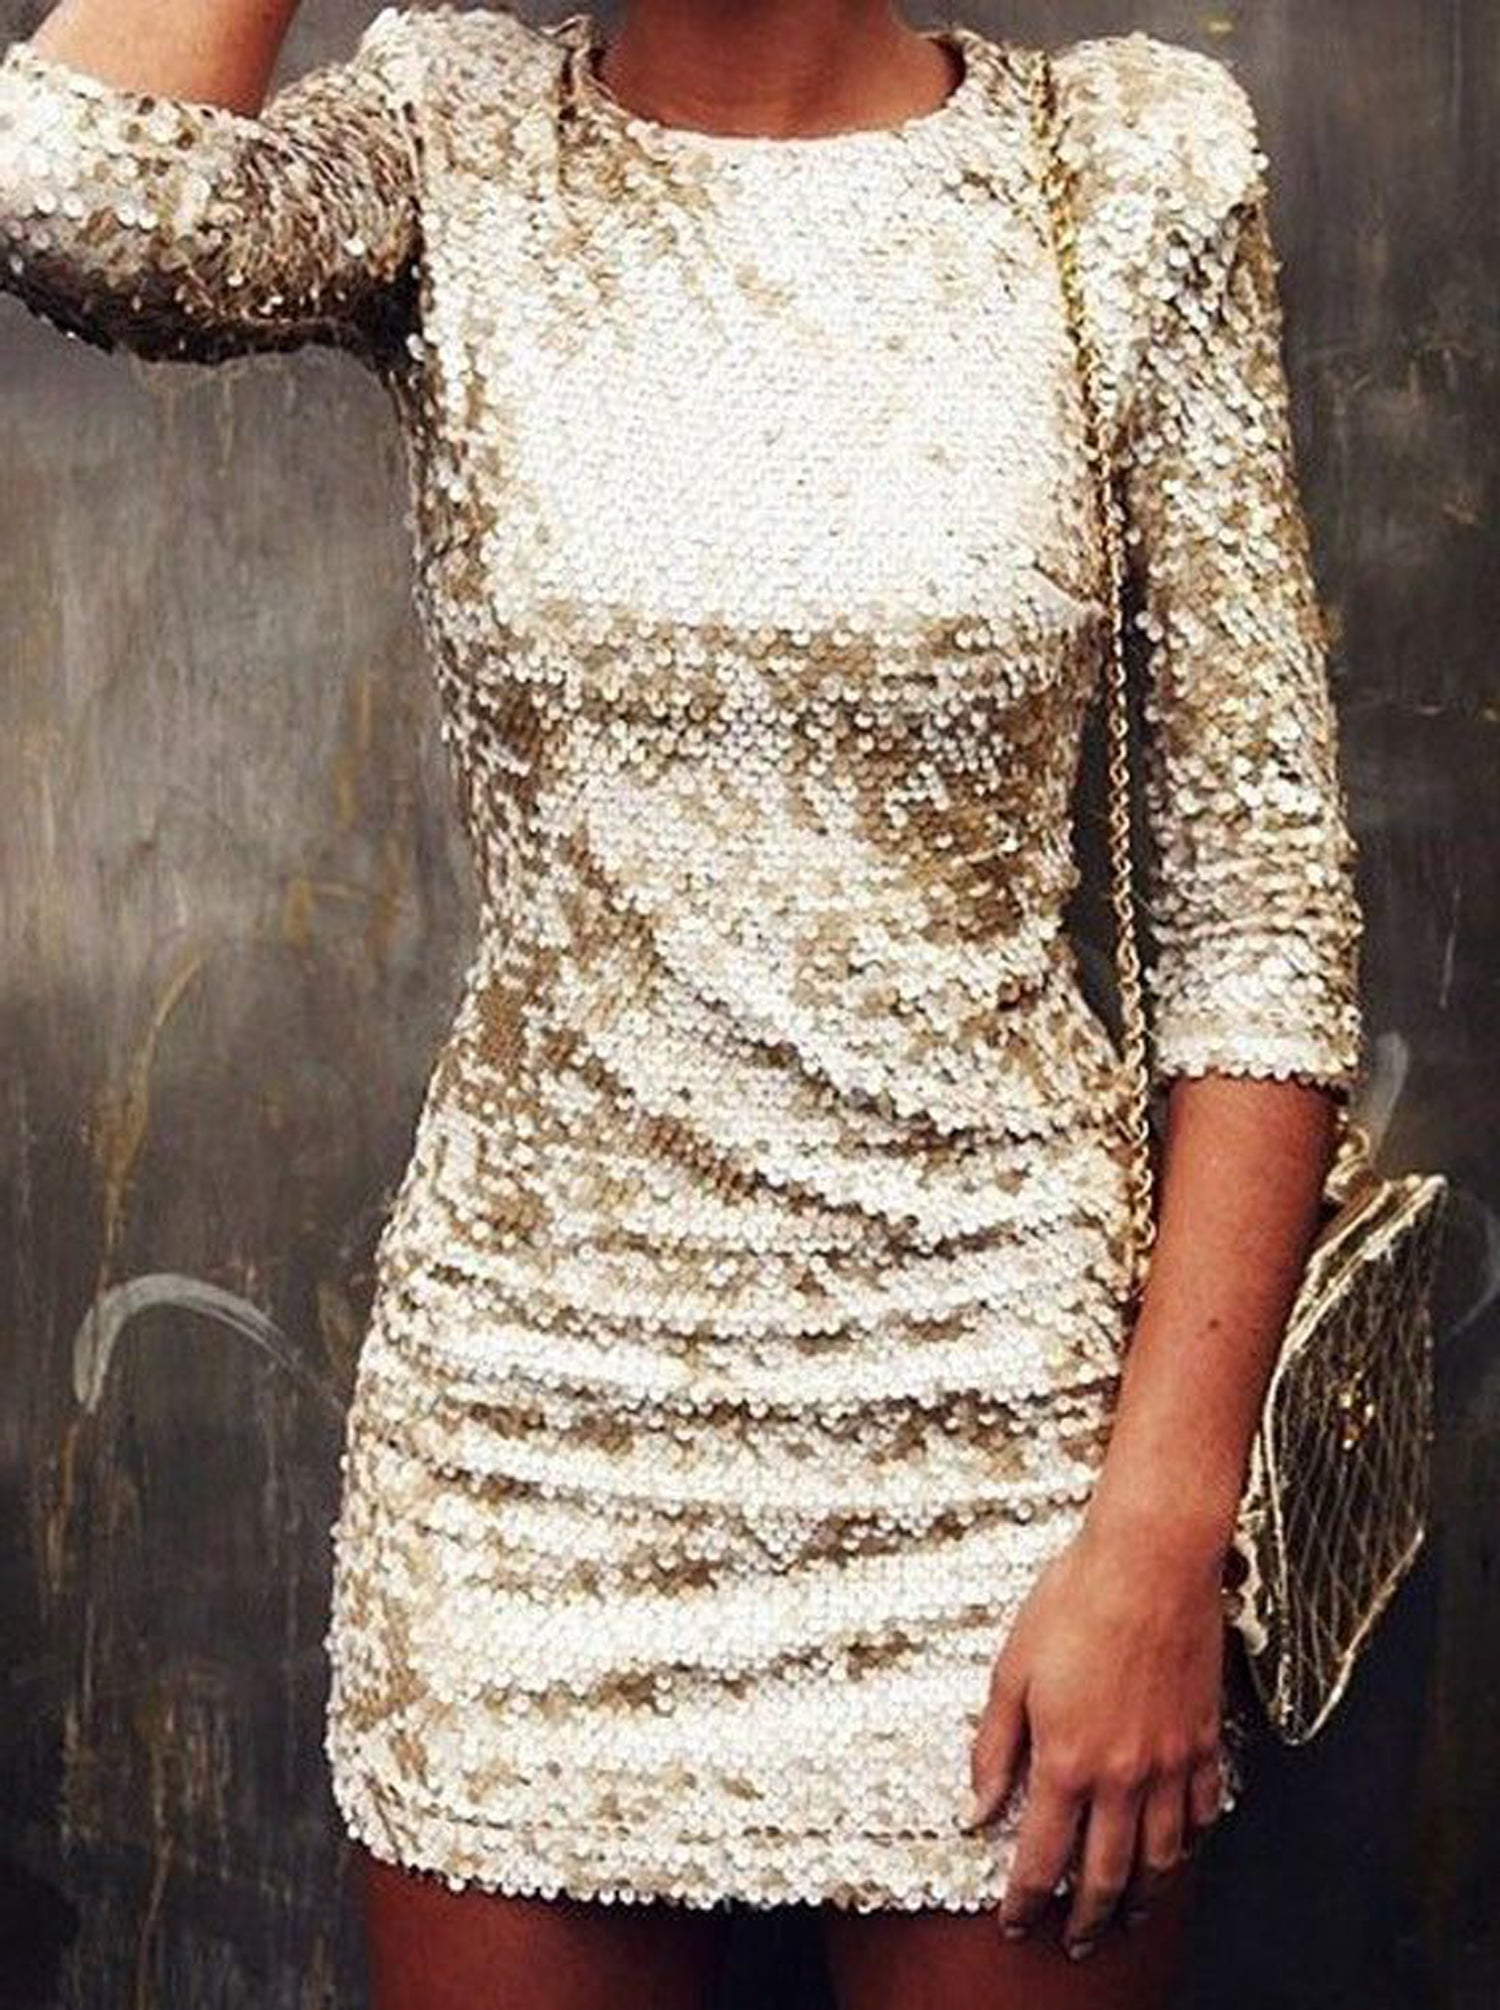 Formal New Years Eve Outfit Ideas for Winter Holiday Parties - Gold Sparkly Sequin Dresses - MyBodiArt.com